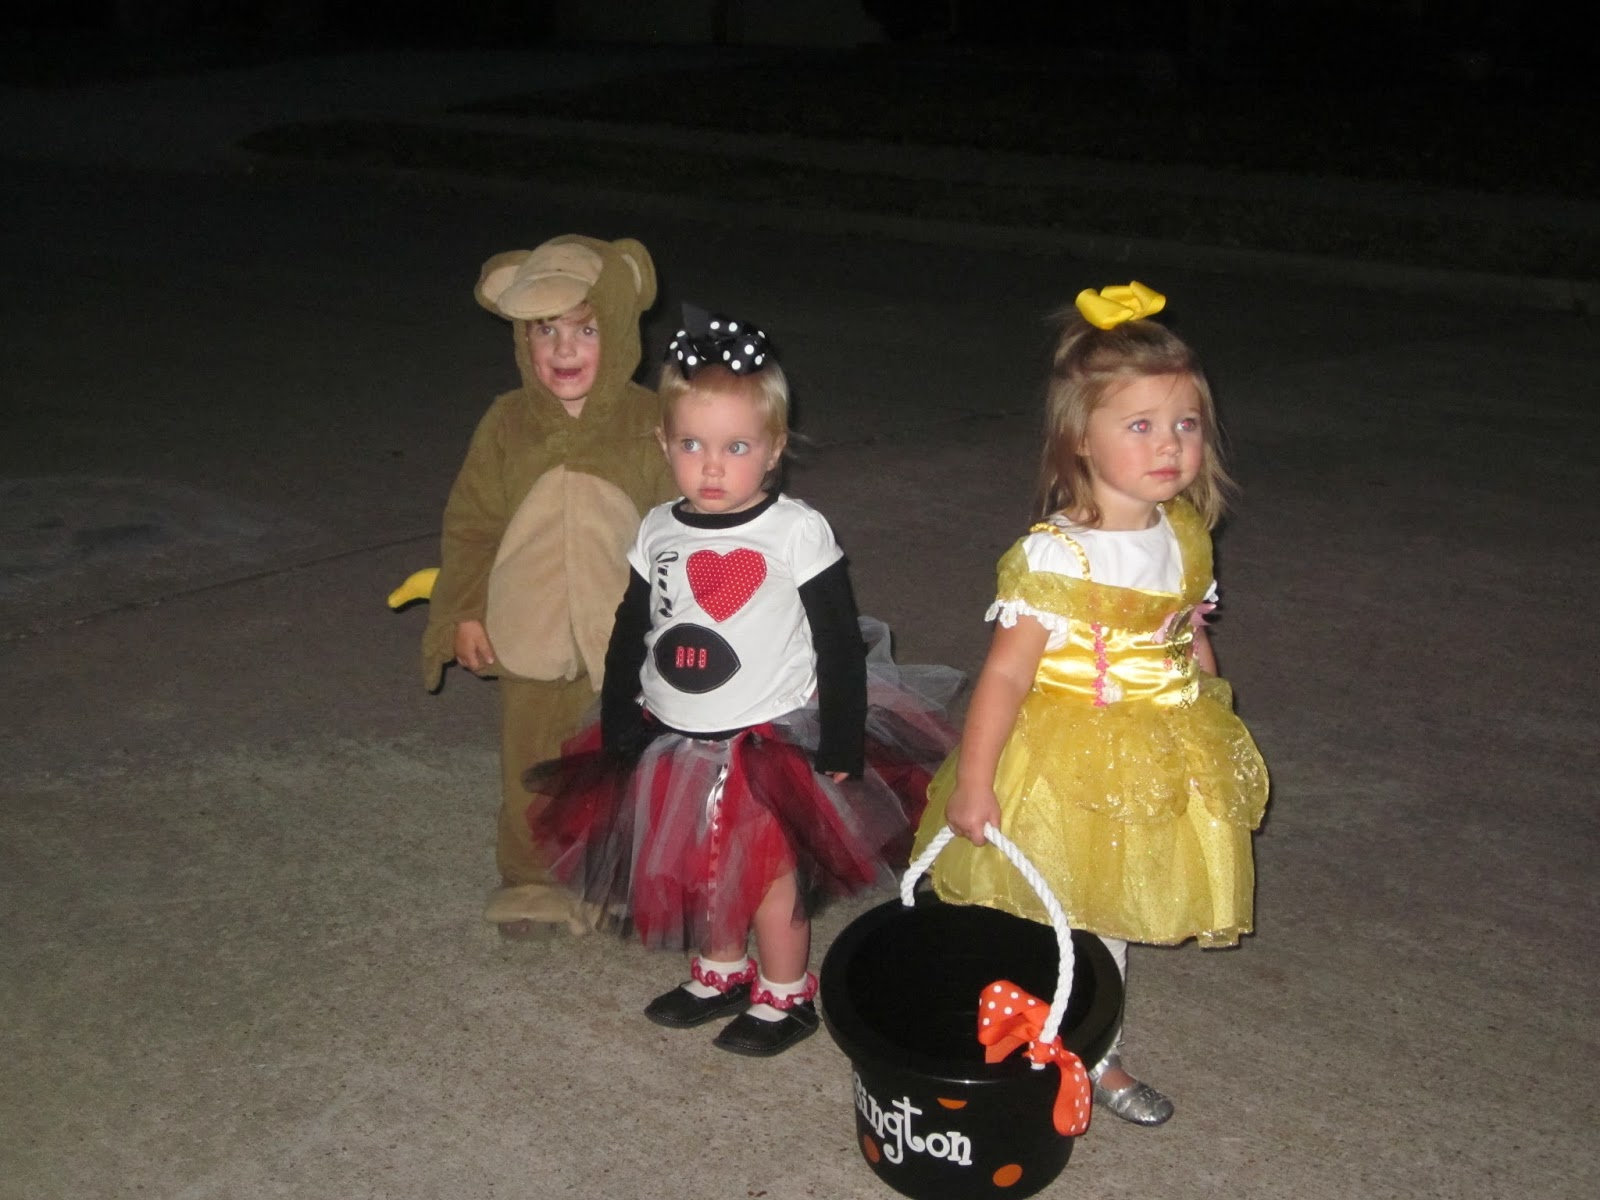 show tell tuesday halloween costumes - Halloween Costumes For A 2 Year Old Boy